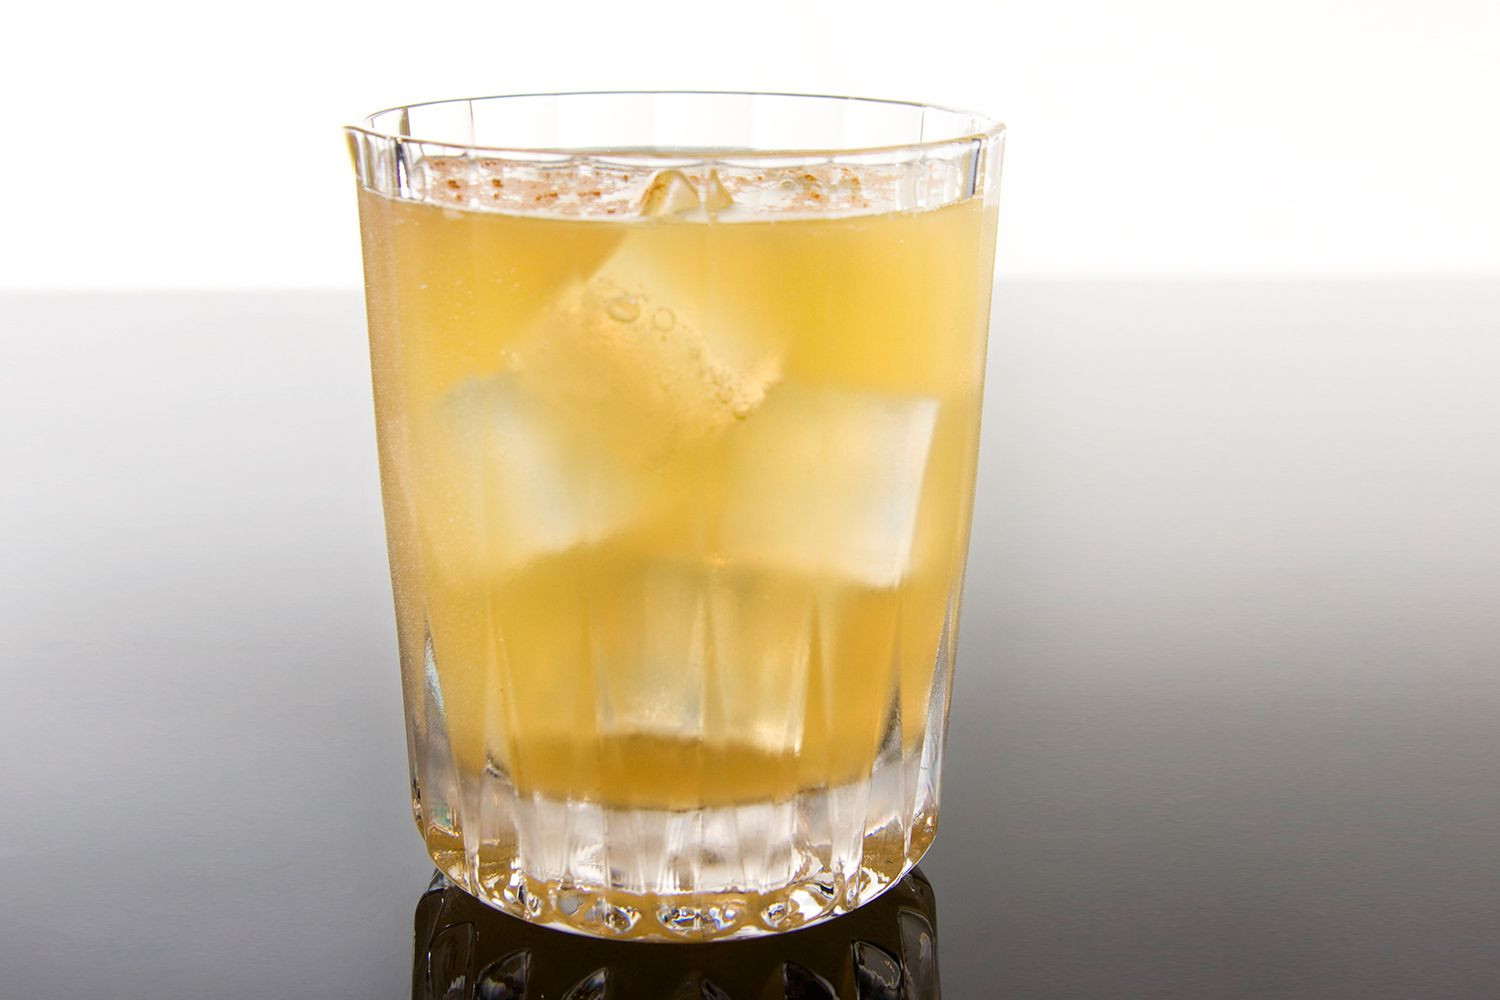 Good Drinks To Mix With Vodka  Vodka with Red Bull Popular Mixed Drink Recipes